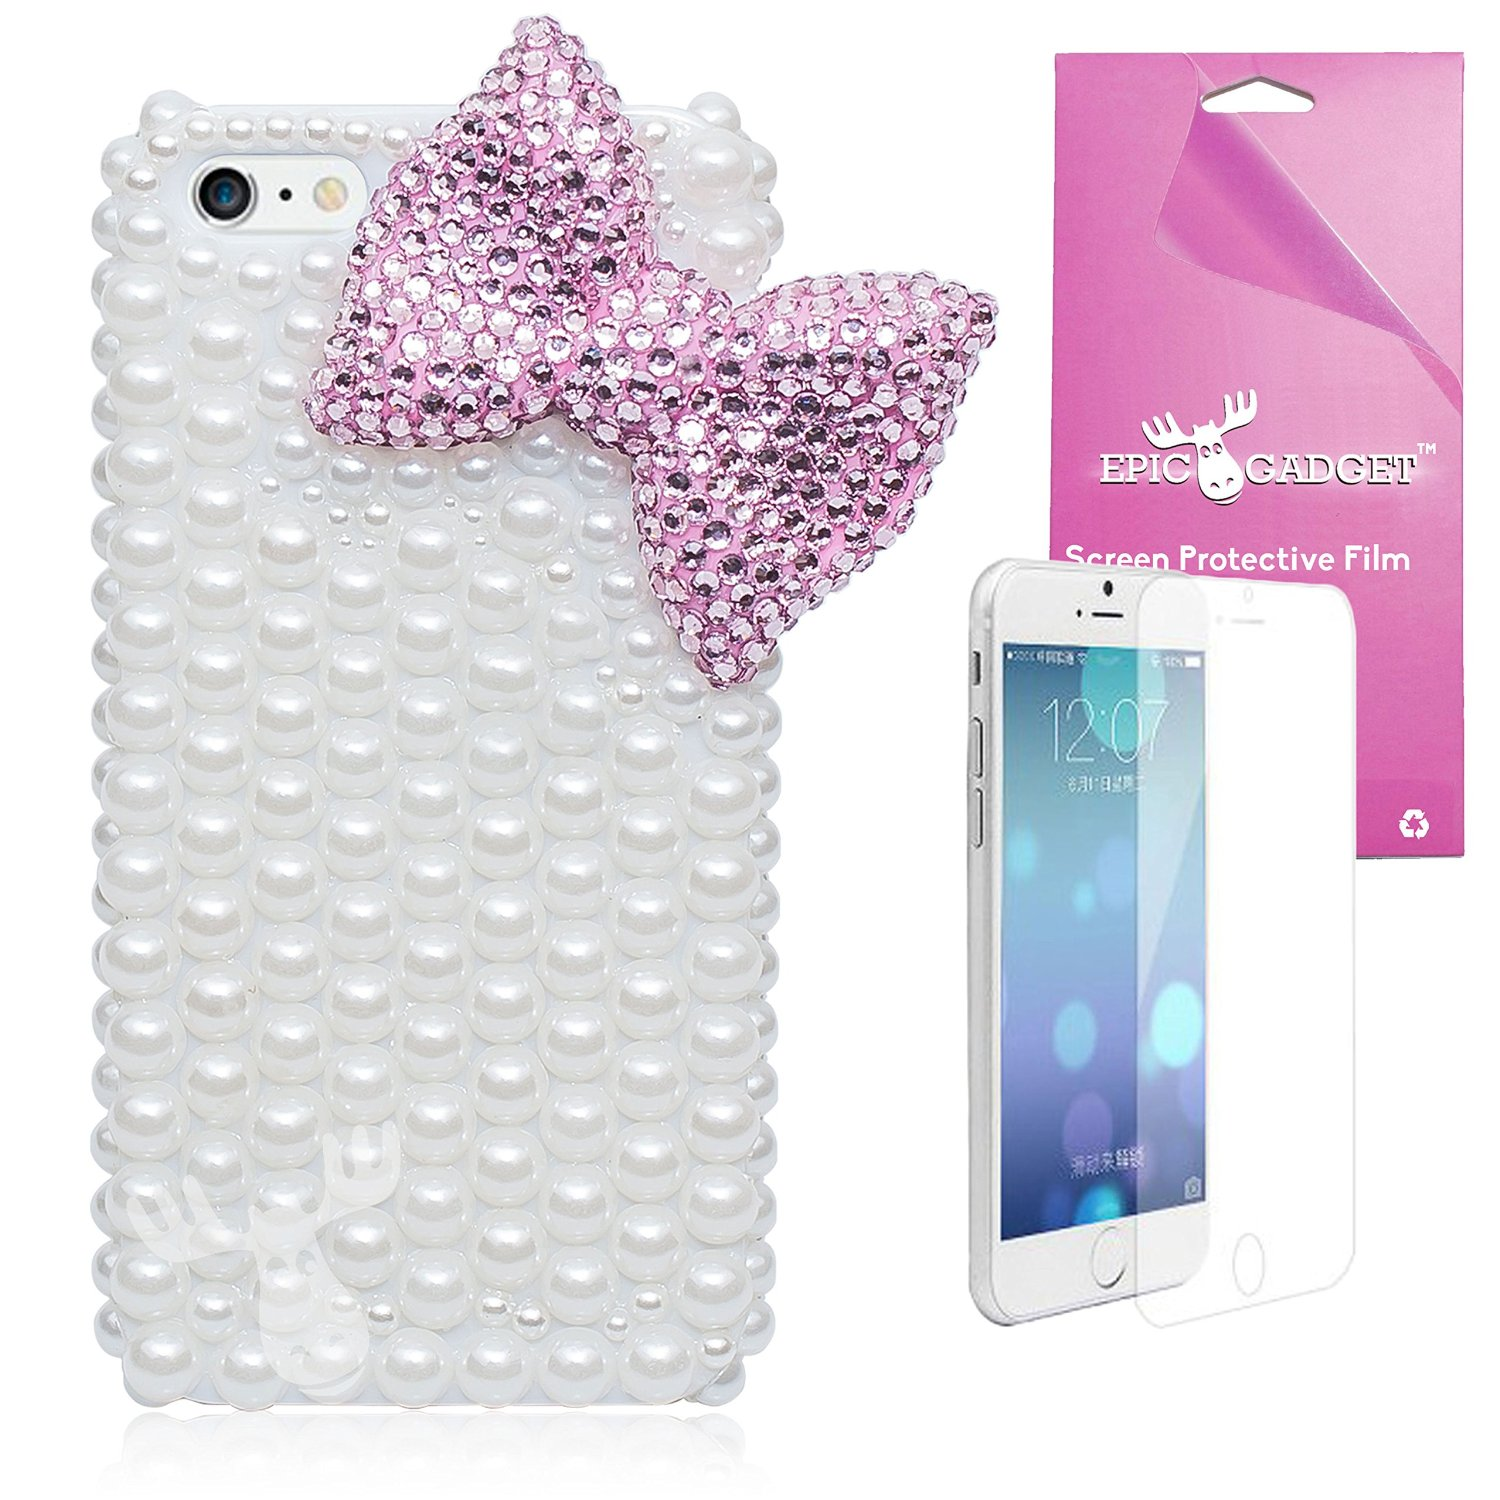 iPhone 6 Plus [5.5] Case, EpicGadget(TM) 3D Bling Luxury Bowknot Pearl Handmad Diamond Cover For Apple iPhone 6 Plus 5.5 inch + Free iPhone 6 Plus Screen Protector (US Seller!!) (Pink Bow Pearl Case)